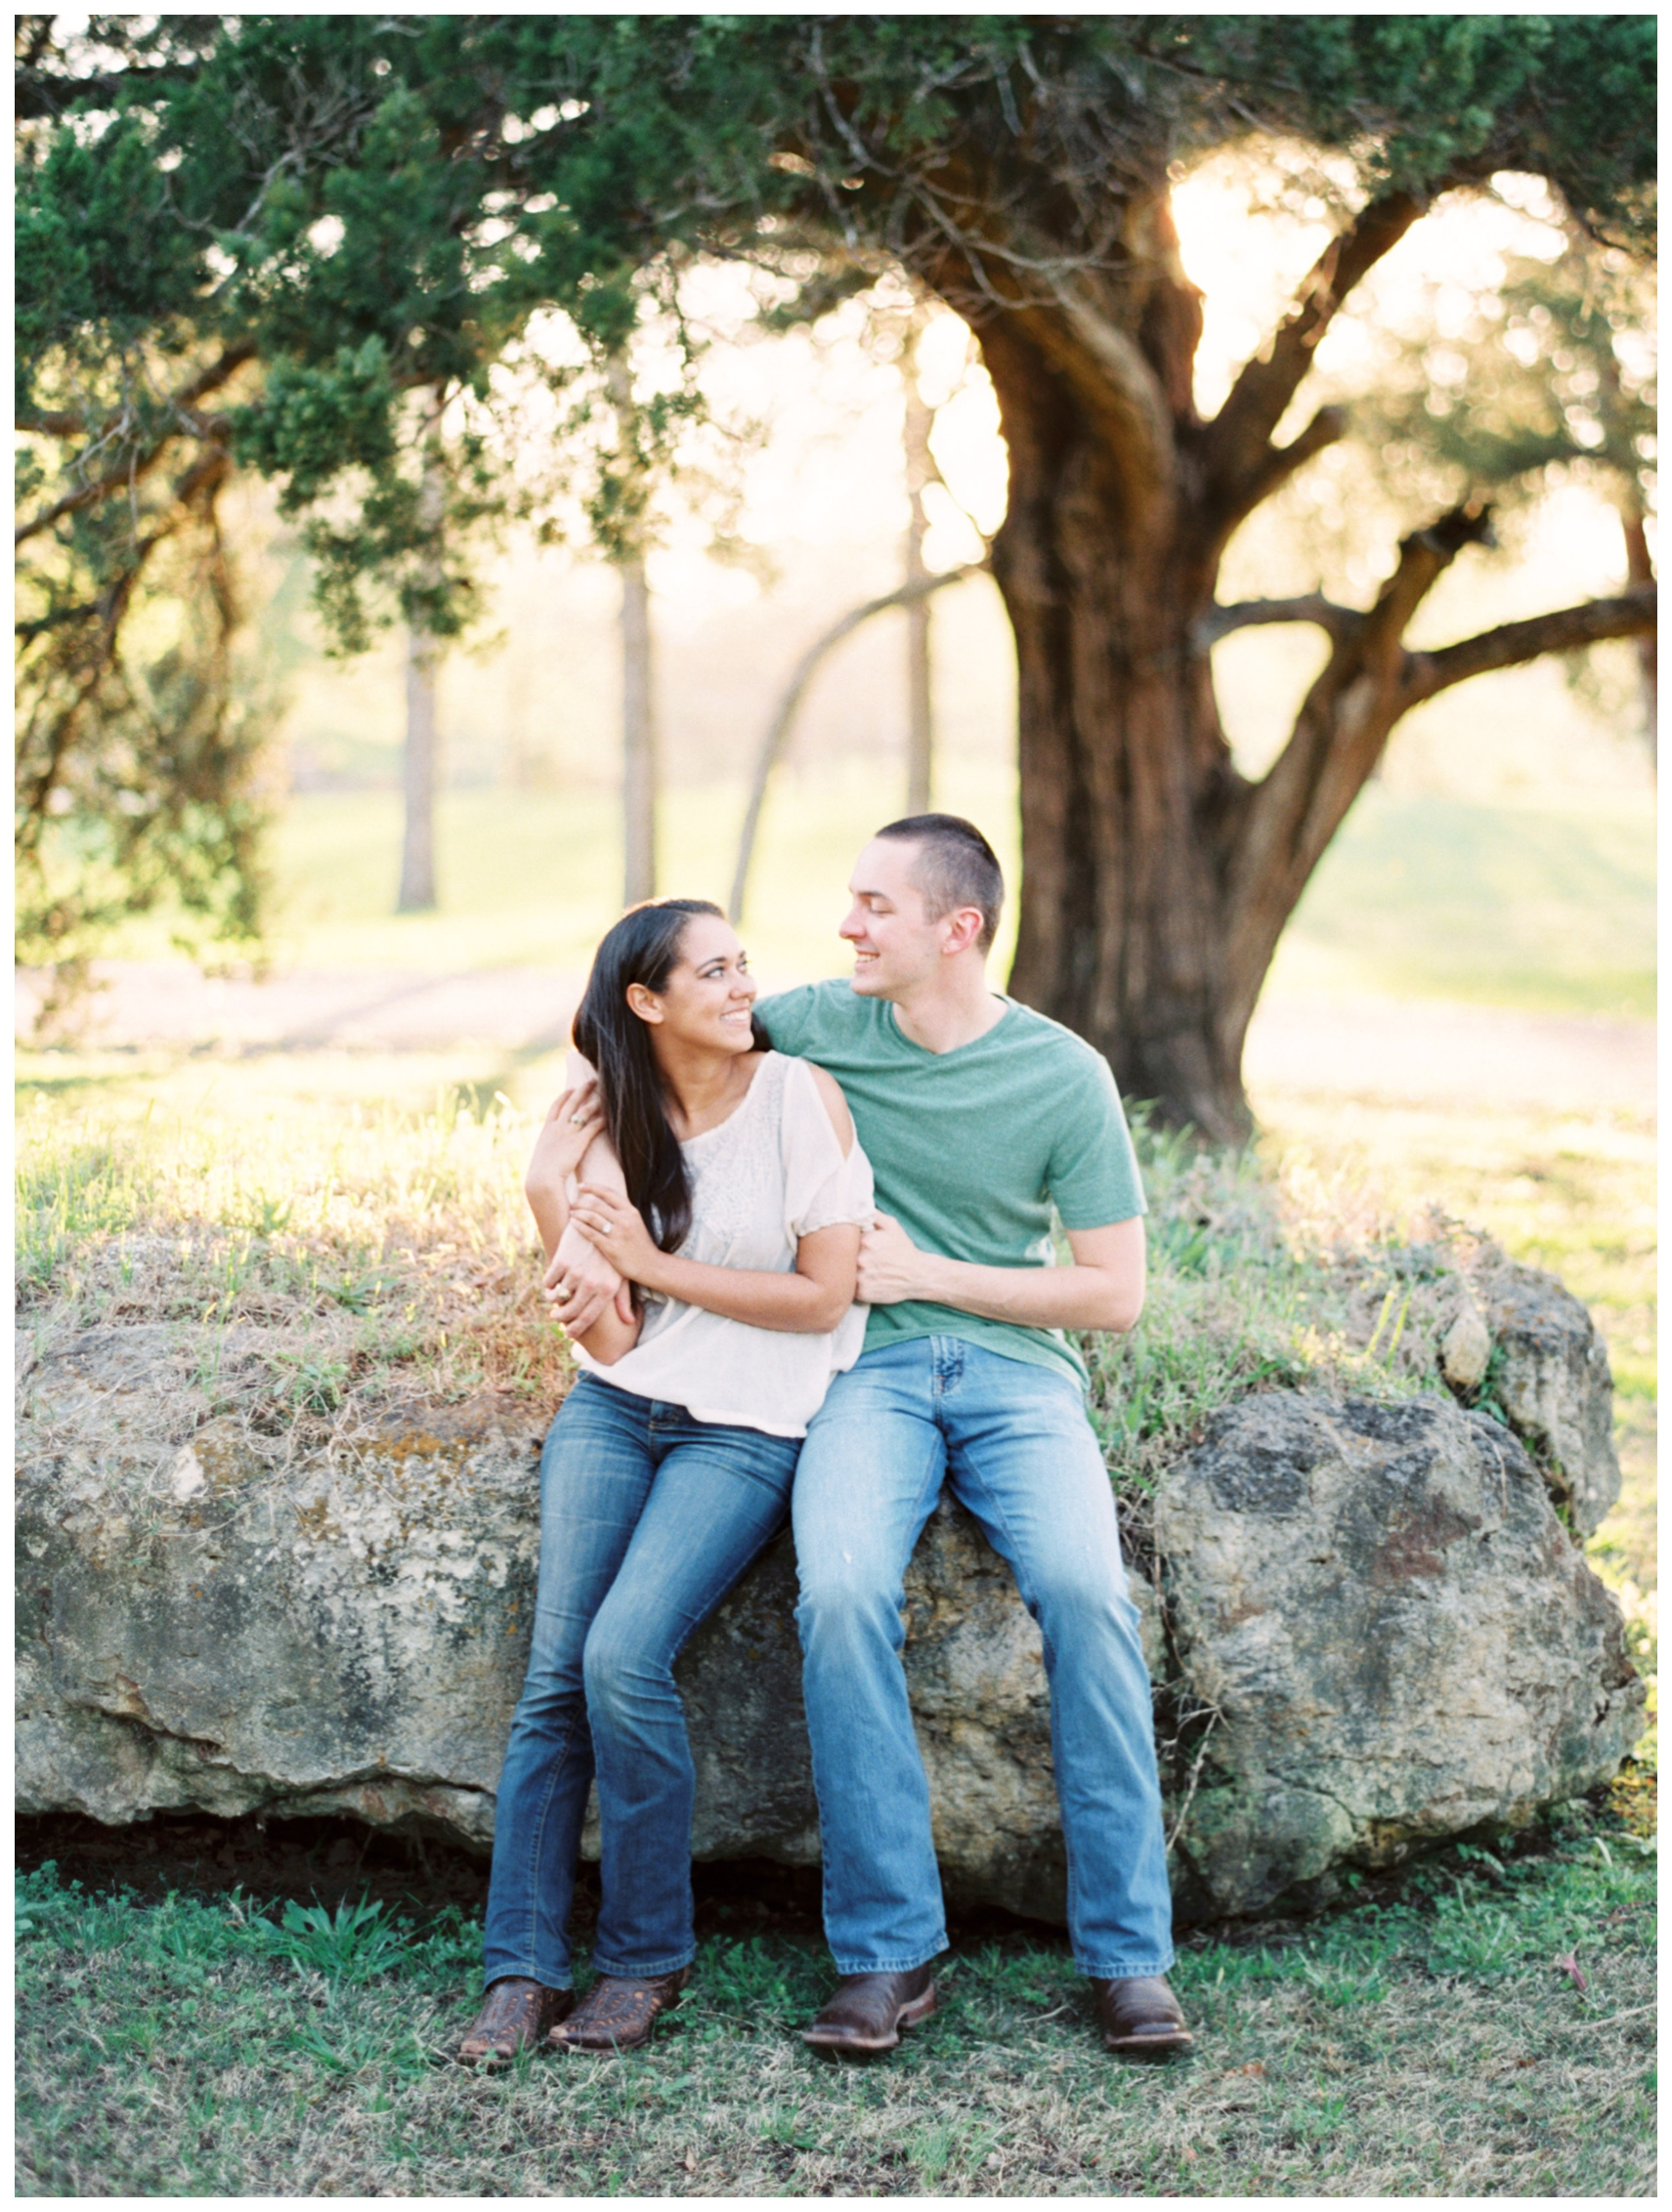 Nyssa & JD Engagements - Rock Lake Ranch - College Station Tx - Film-17_STP.jpg